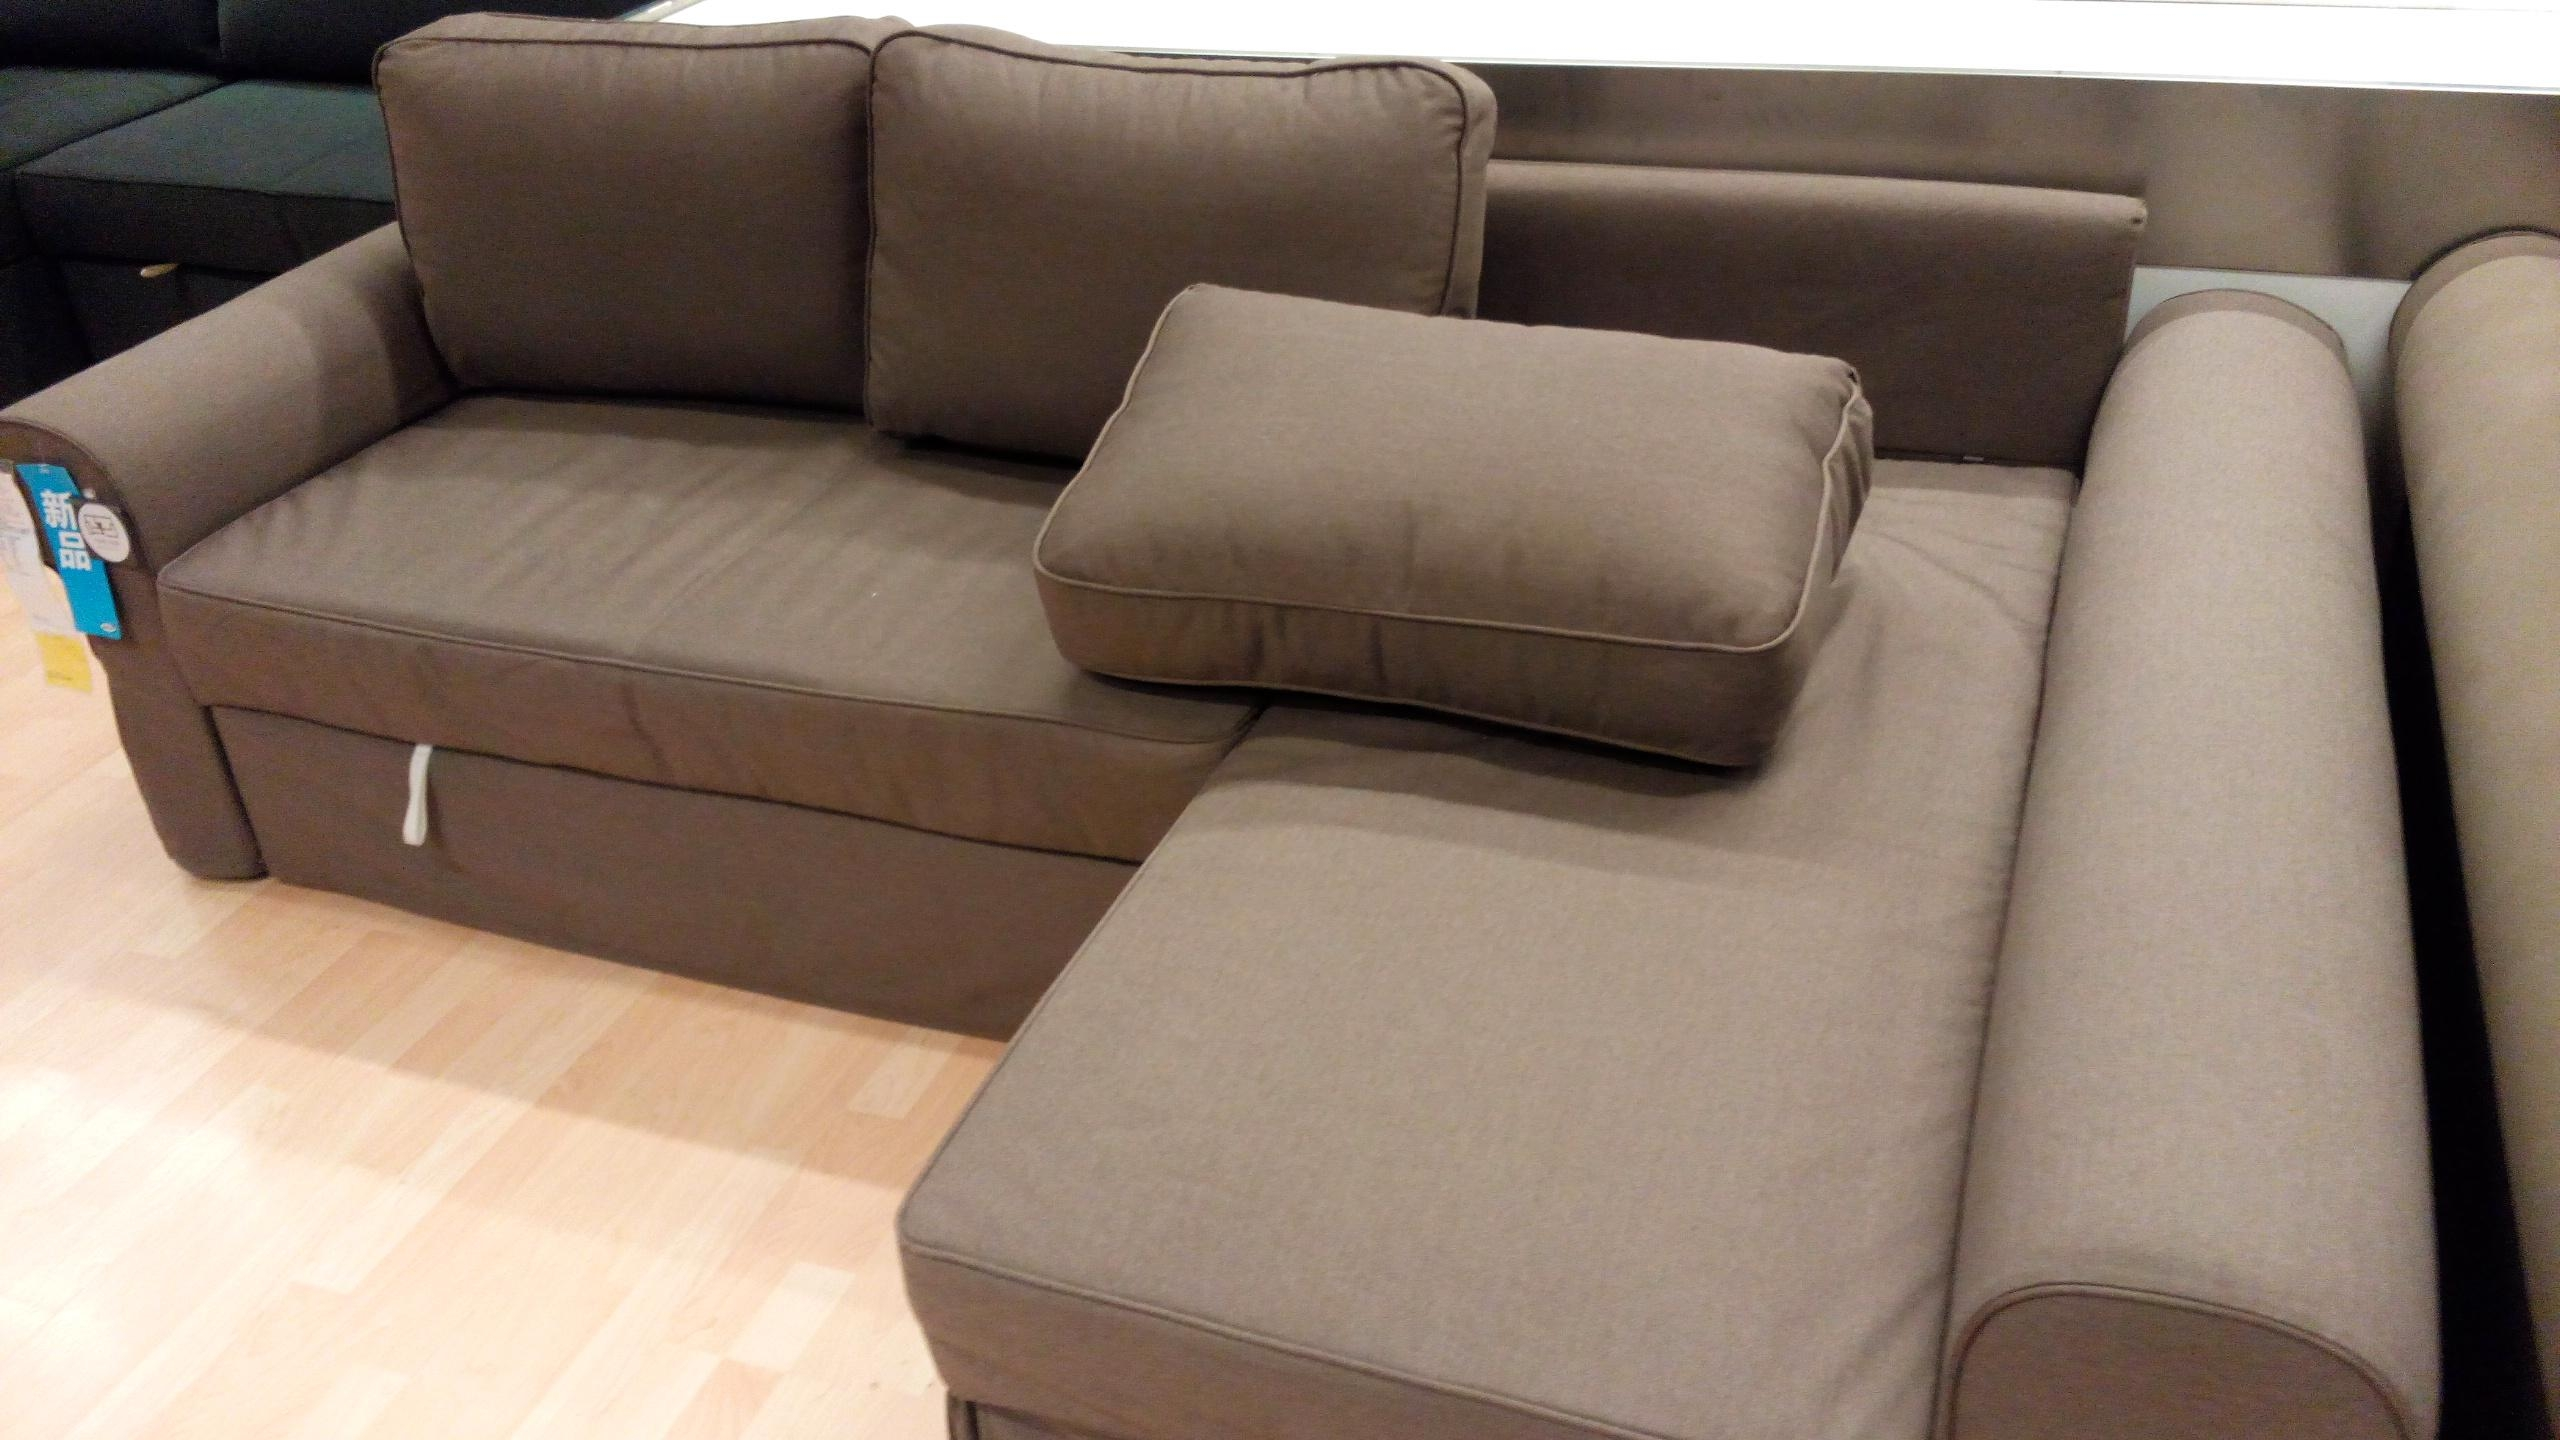 Ikea Vilasund And Backabro Review – Return Of The Sofa Bed Clones! Regarding Sofa Beds With Chaise Lounge (View 4 of 20)